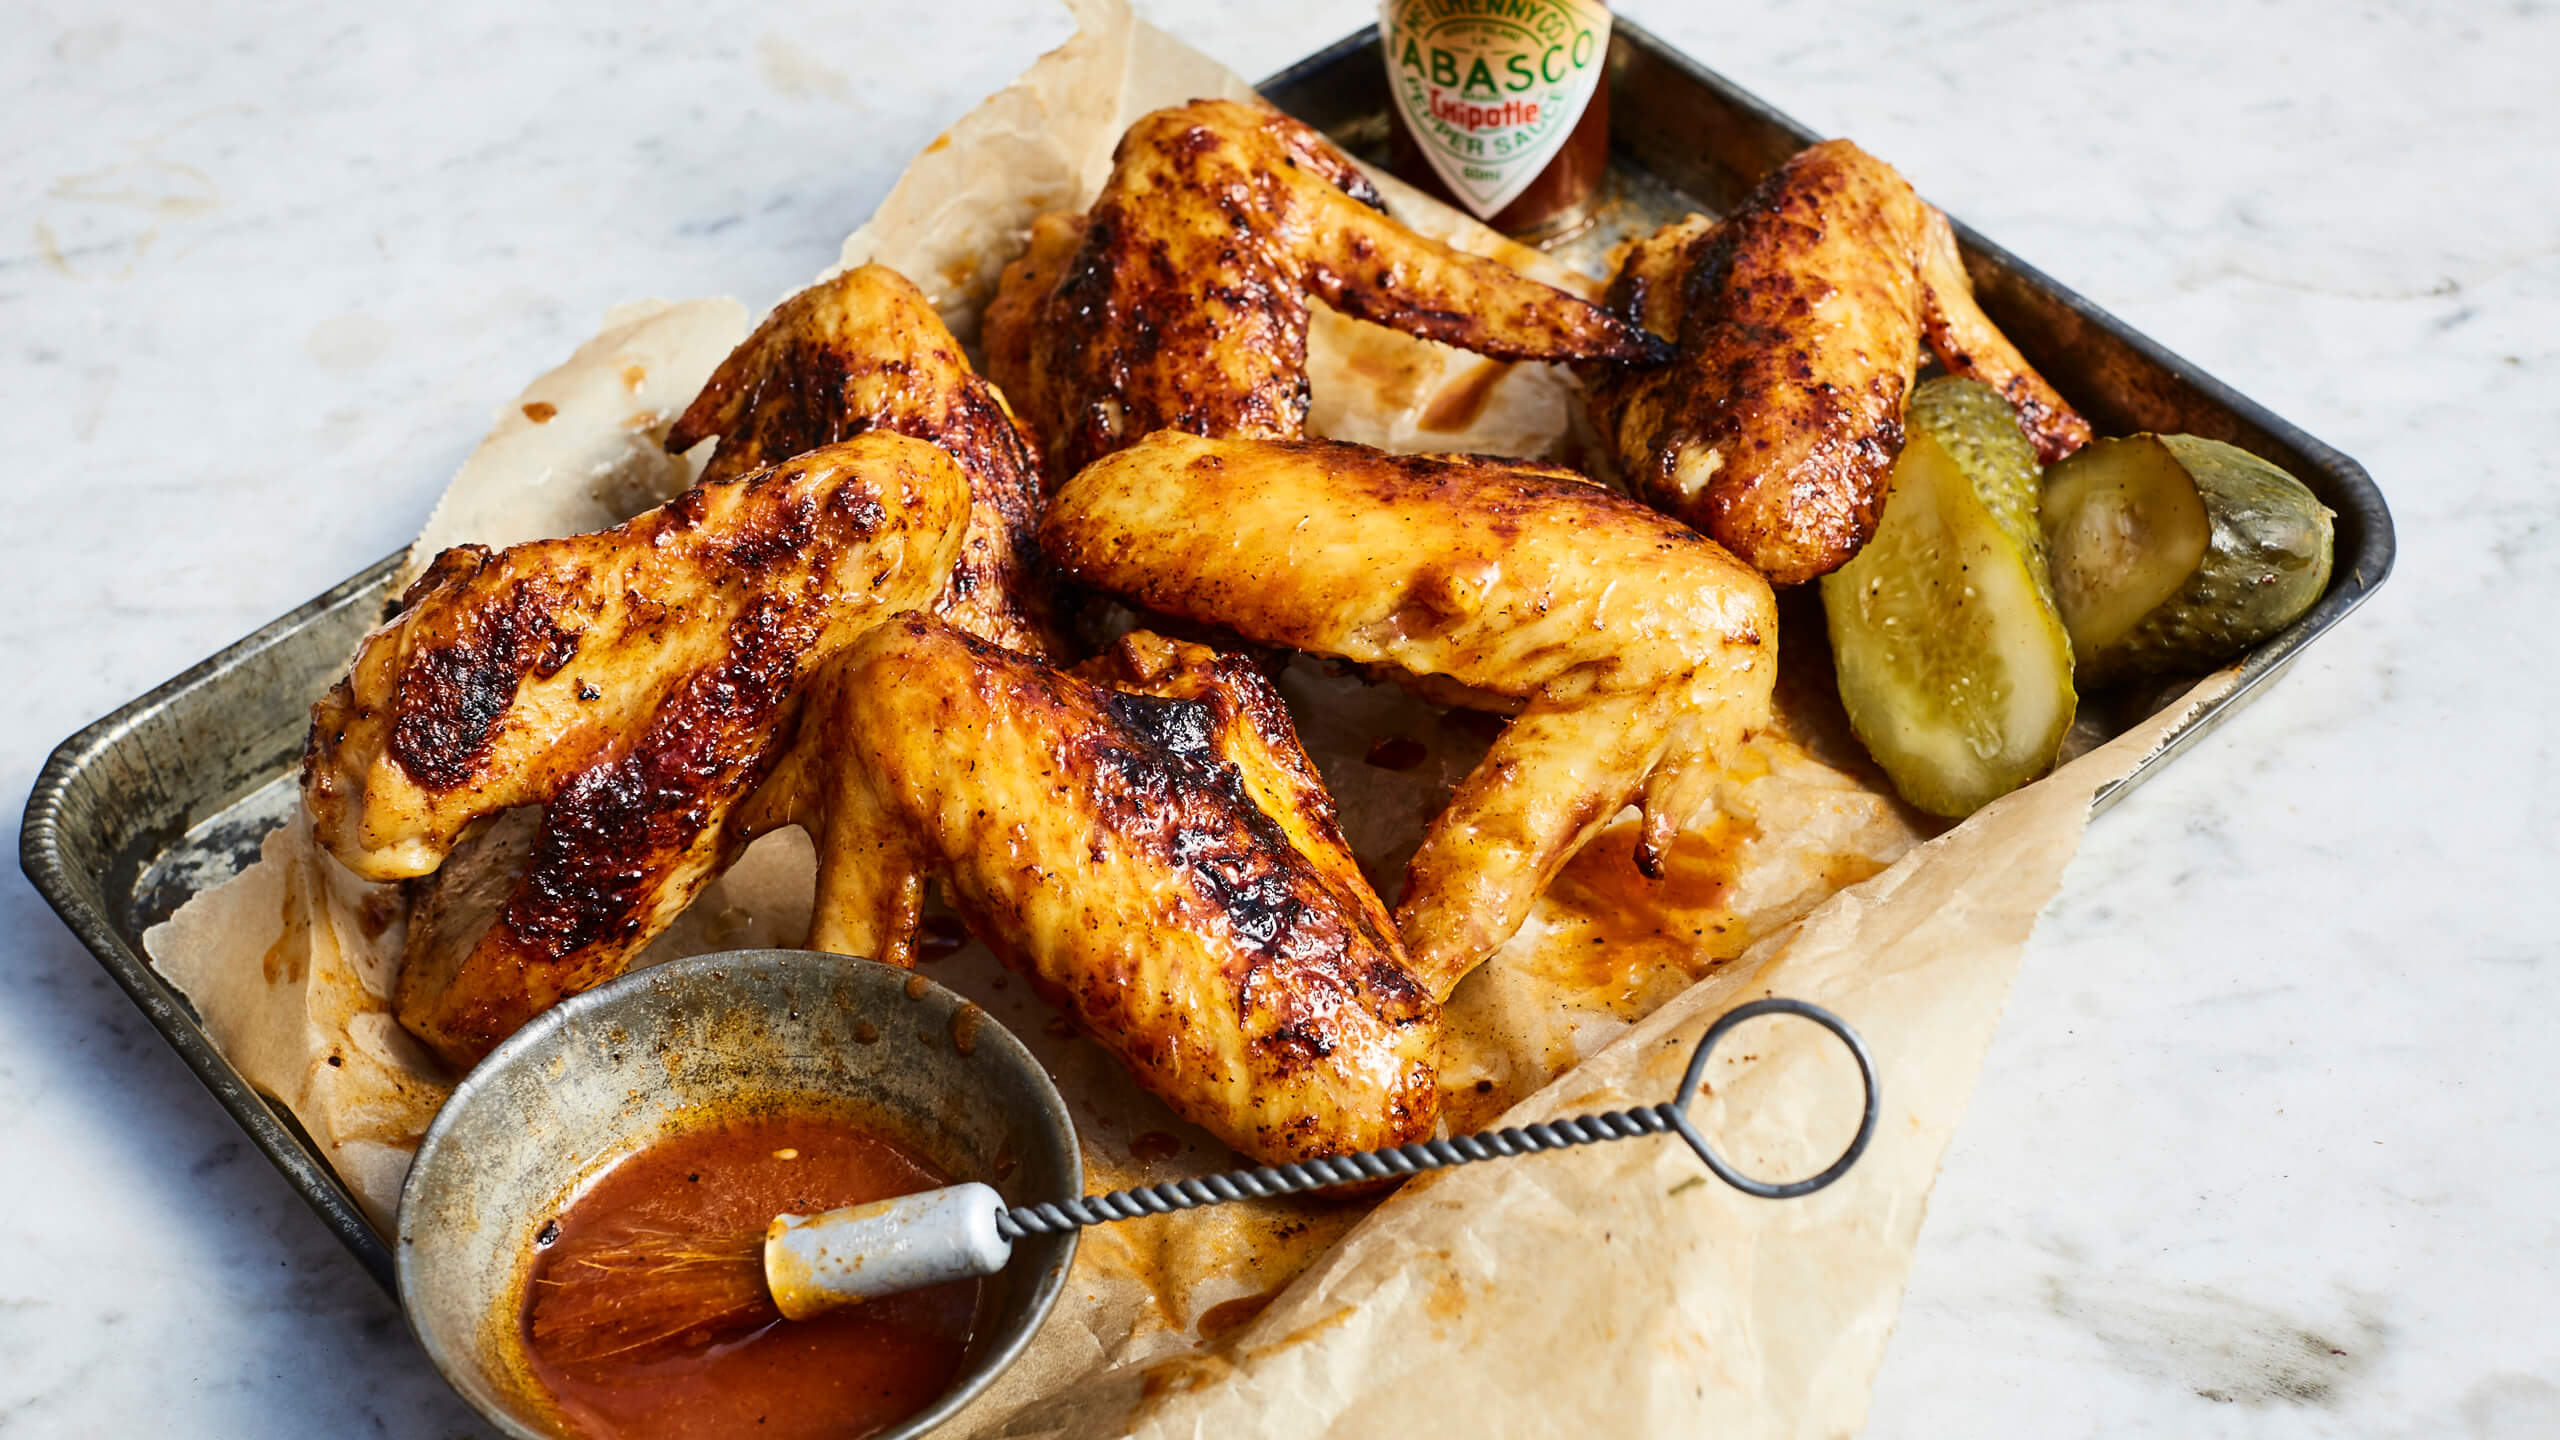 Smoked Chipotle Chicken Wings by Elizabeth Haigh